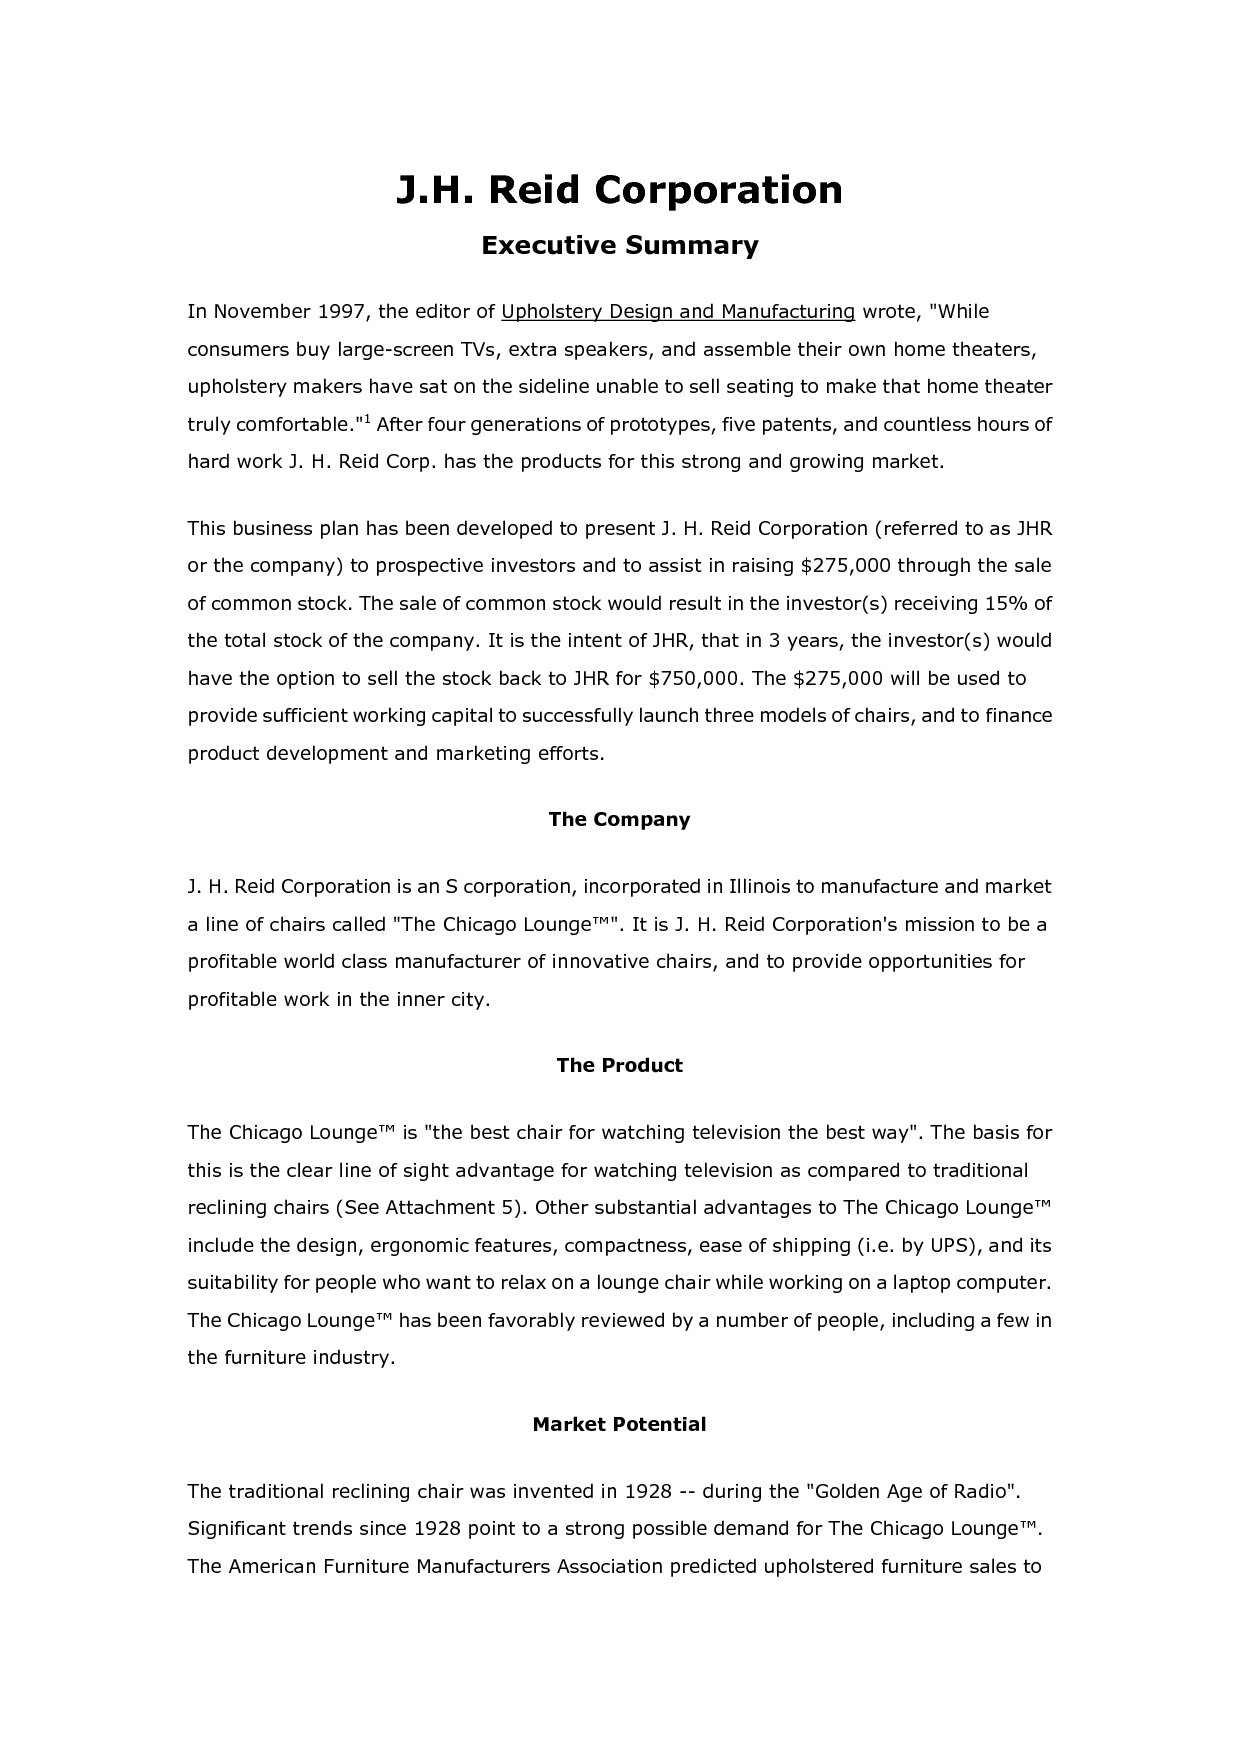 satirical essay example proposal essays essay examples how to proposal essays essay examples how to write a research proposal essay examples socialsci co